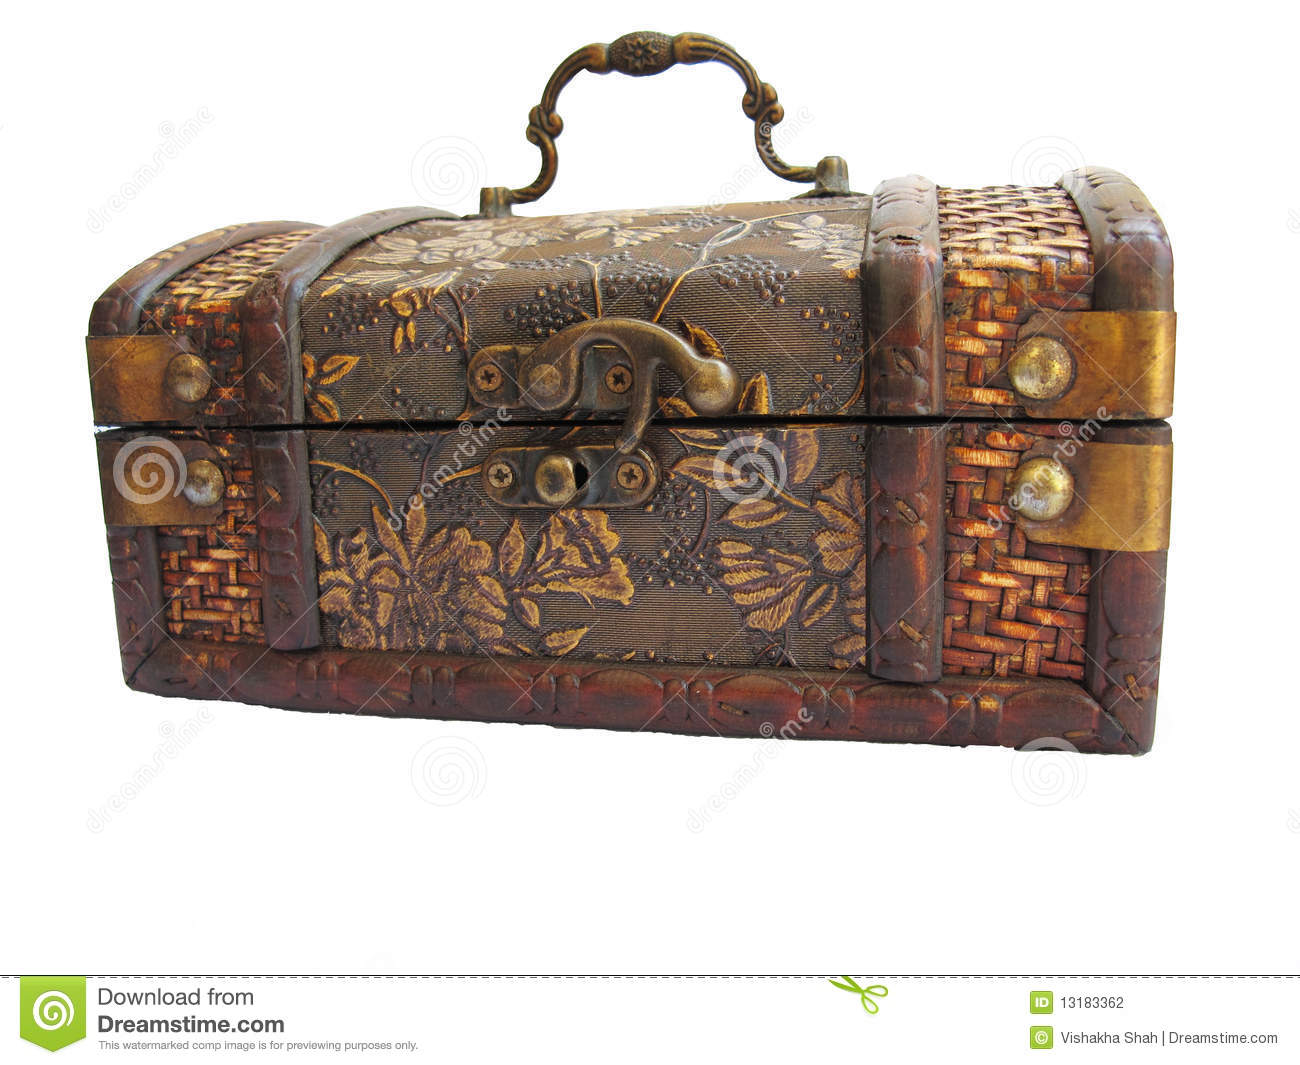 An ancient wooden crafted box with metal lock.